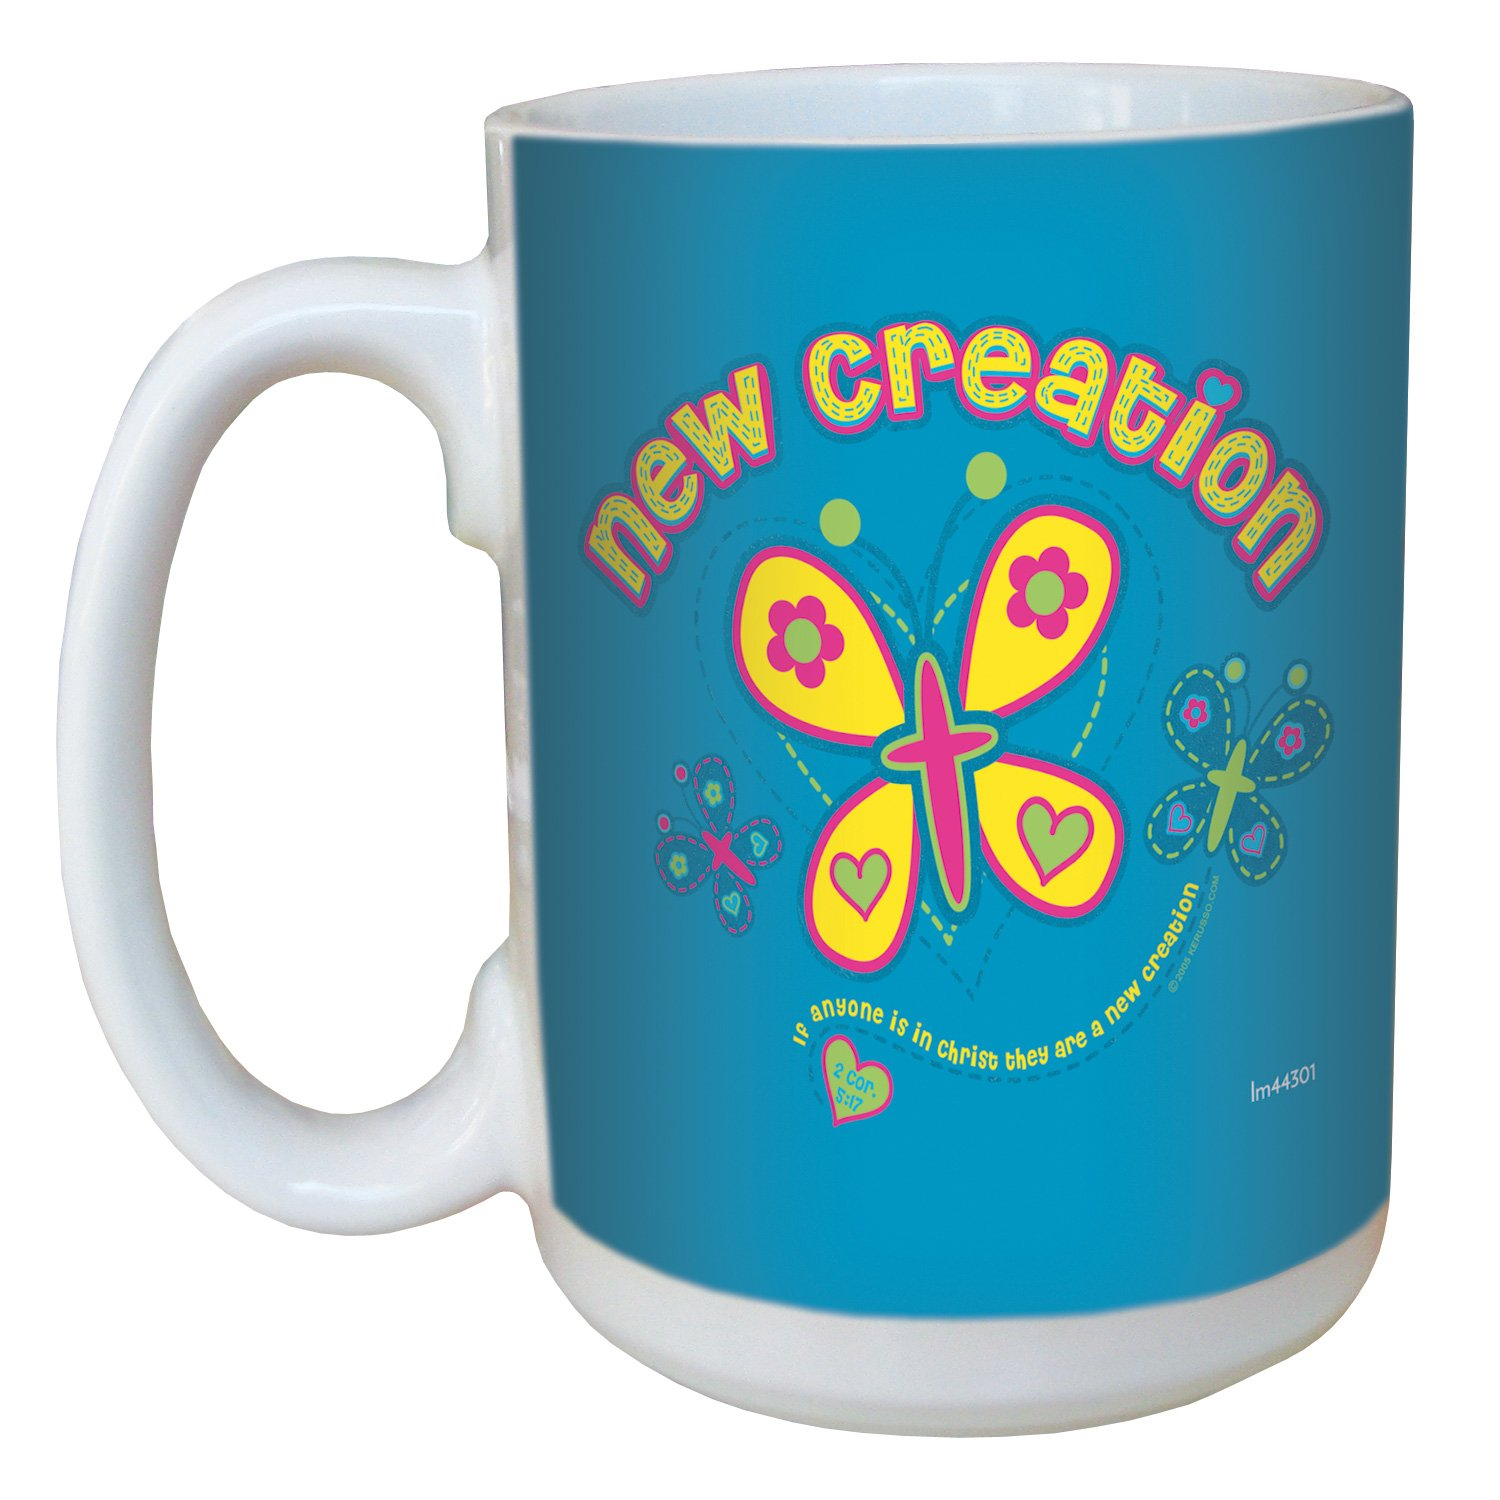 Tree-Free Greetings lm44301 New Creation: 2 Corinthians 5:17 Ceramic Mug with Full-Sized Handle, 15-Ounce by Tree-Free Greetings